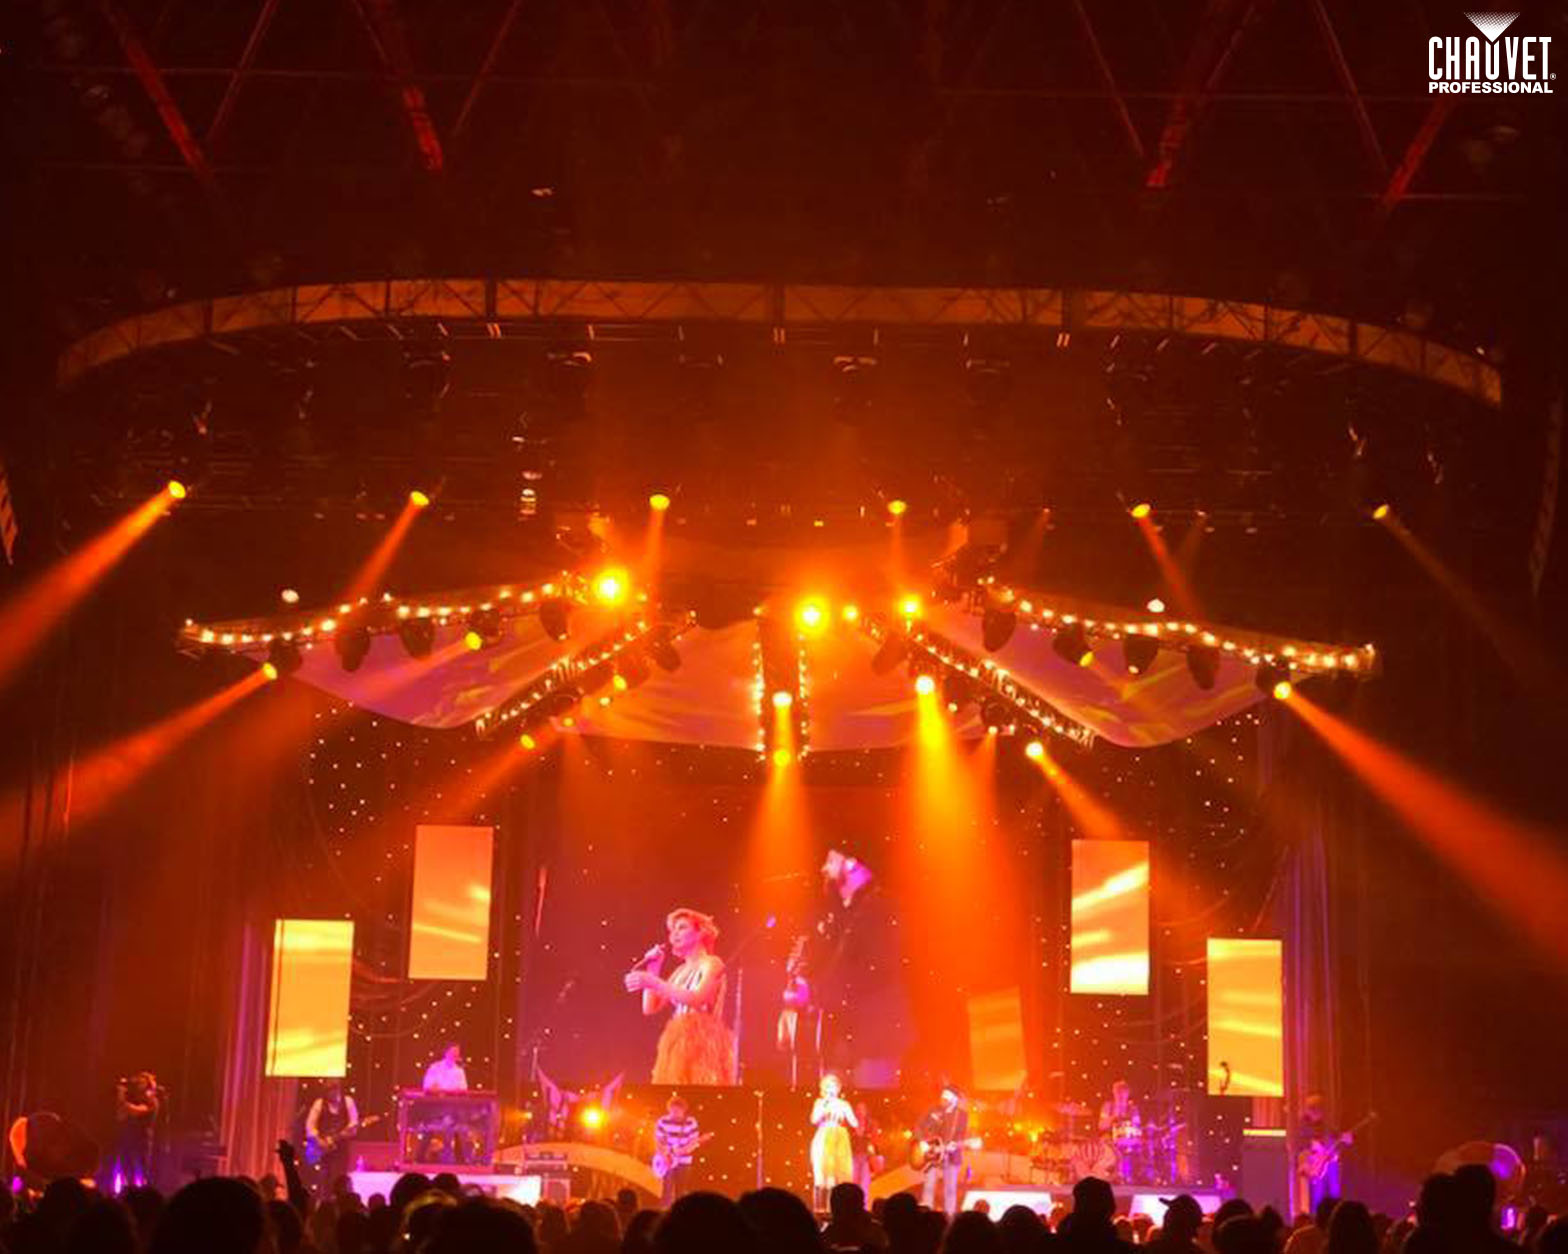 Sugarland Tour Gets Festive Looks From CLLD and CHAUVET Professional